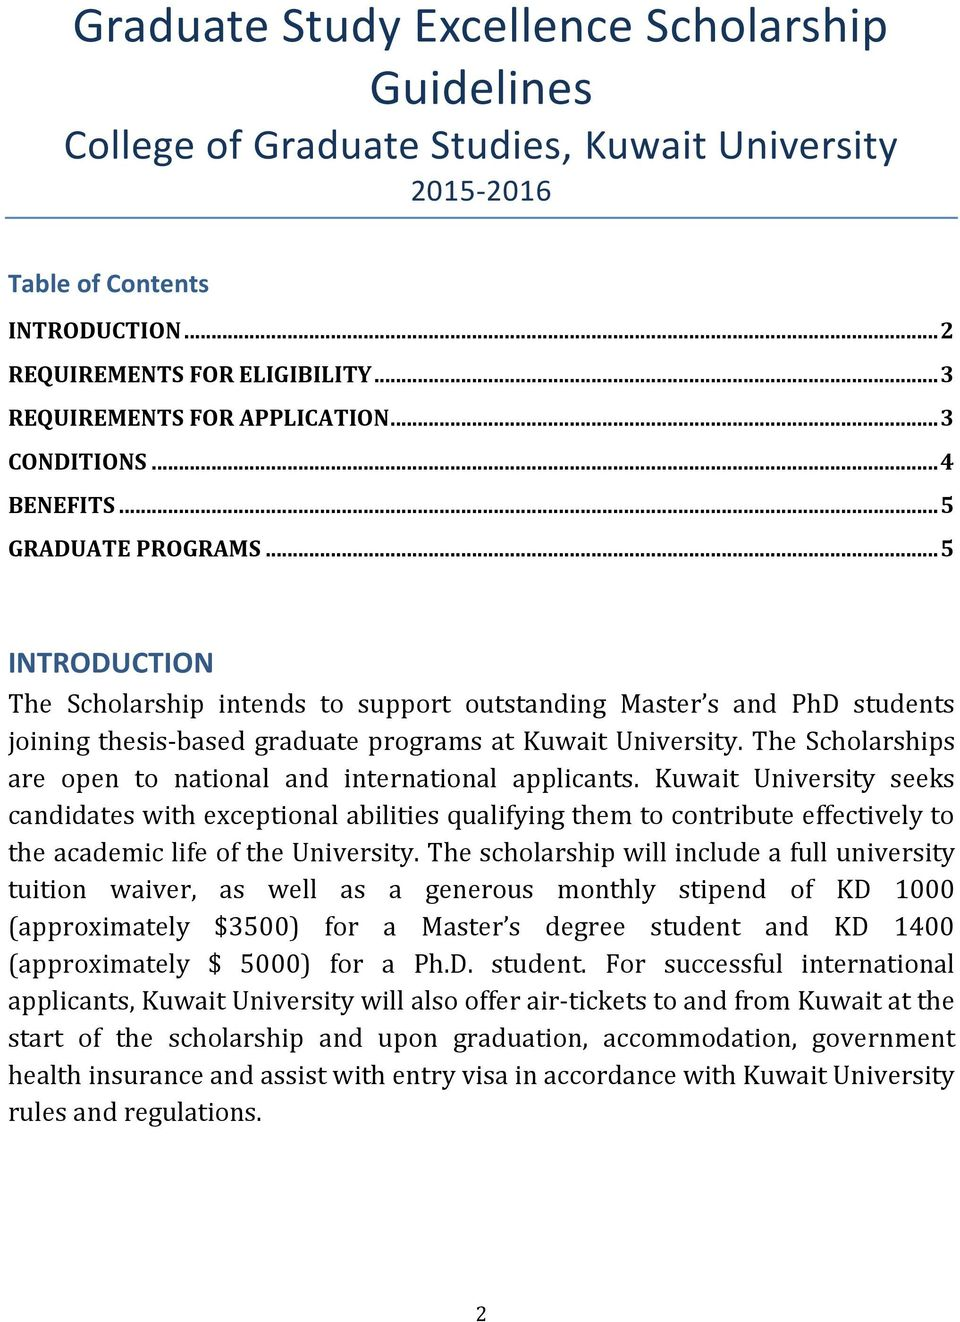 100 Great Scholarships for Master's Degree Programs